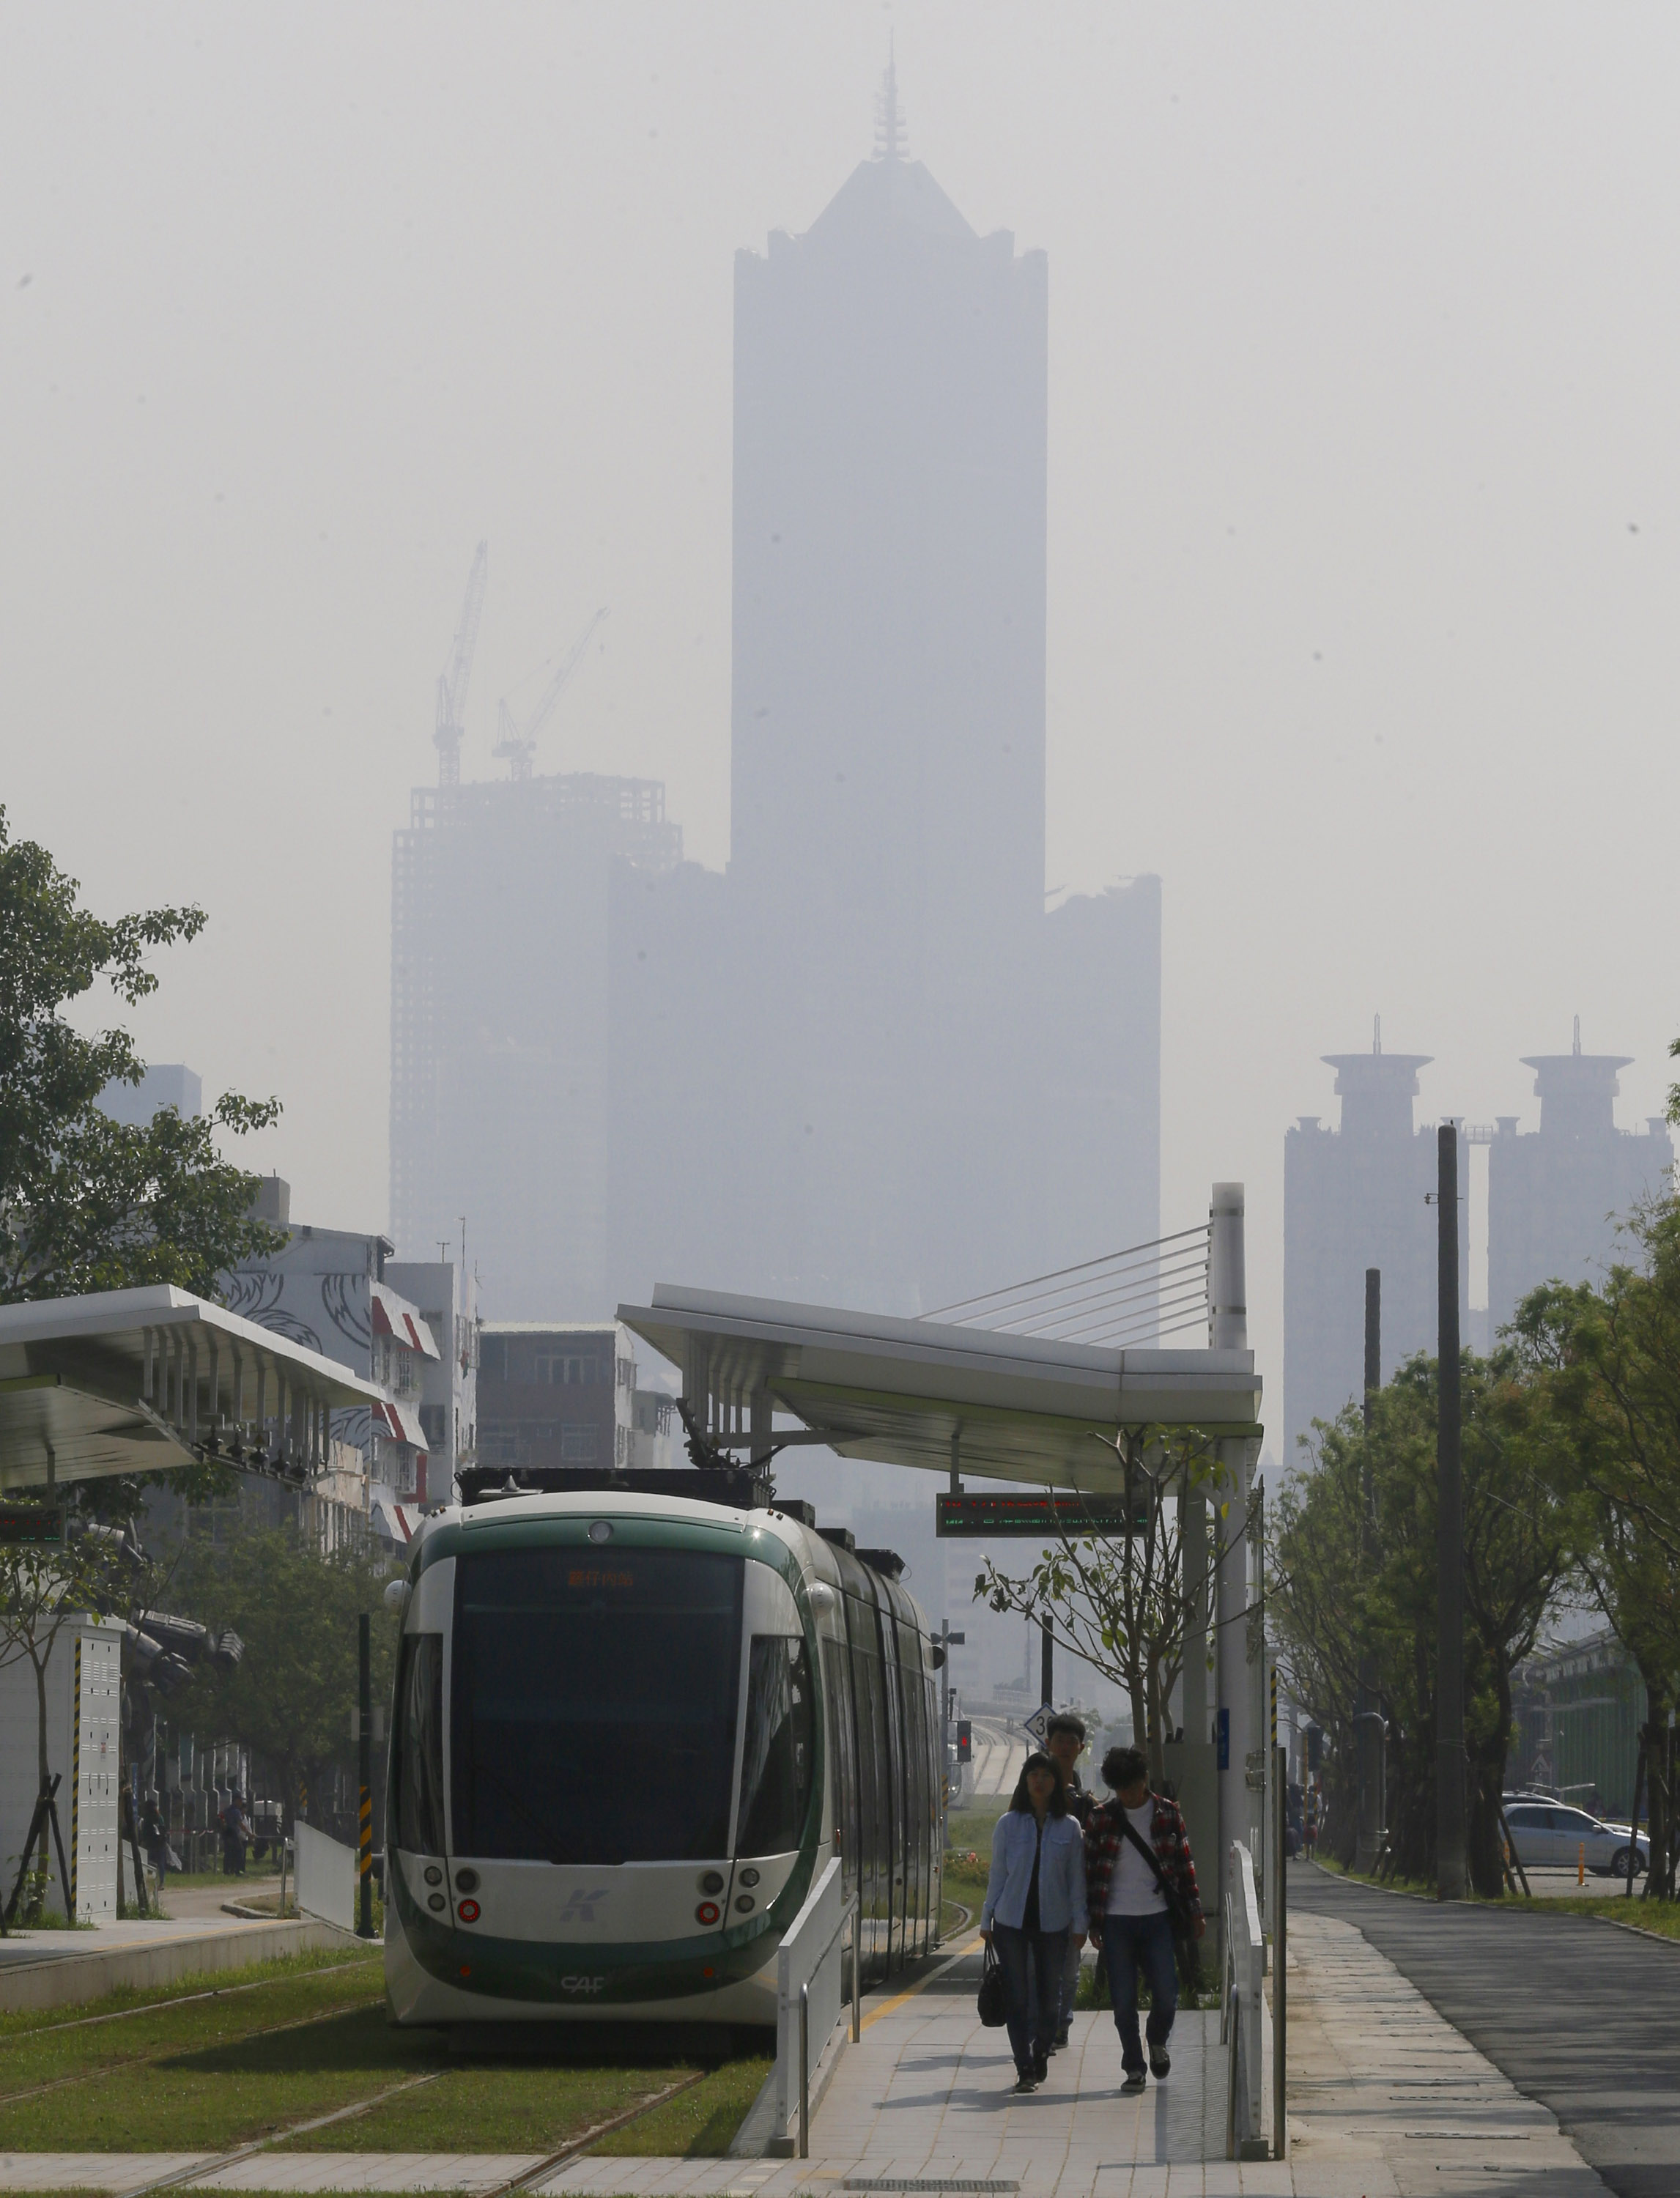 Kaohsiung to fight air pollution with 3 months of free public transport.